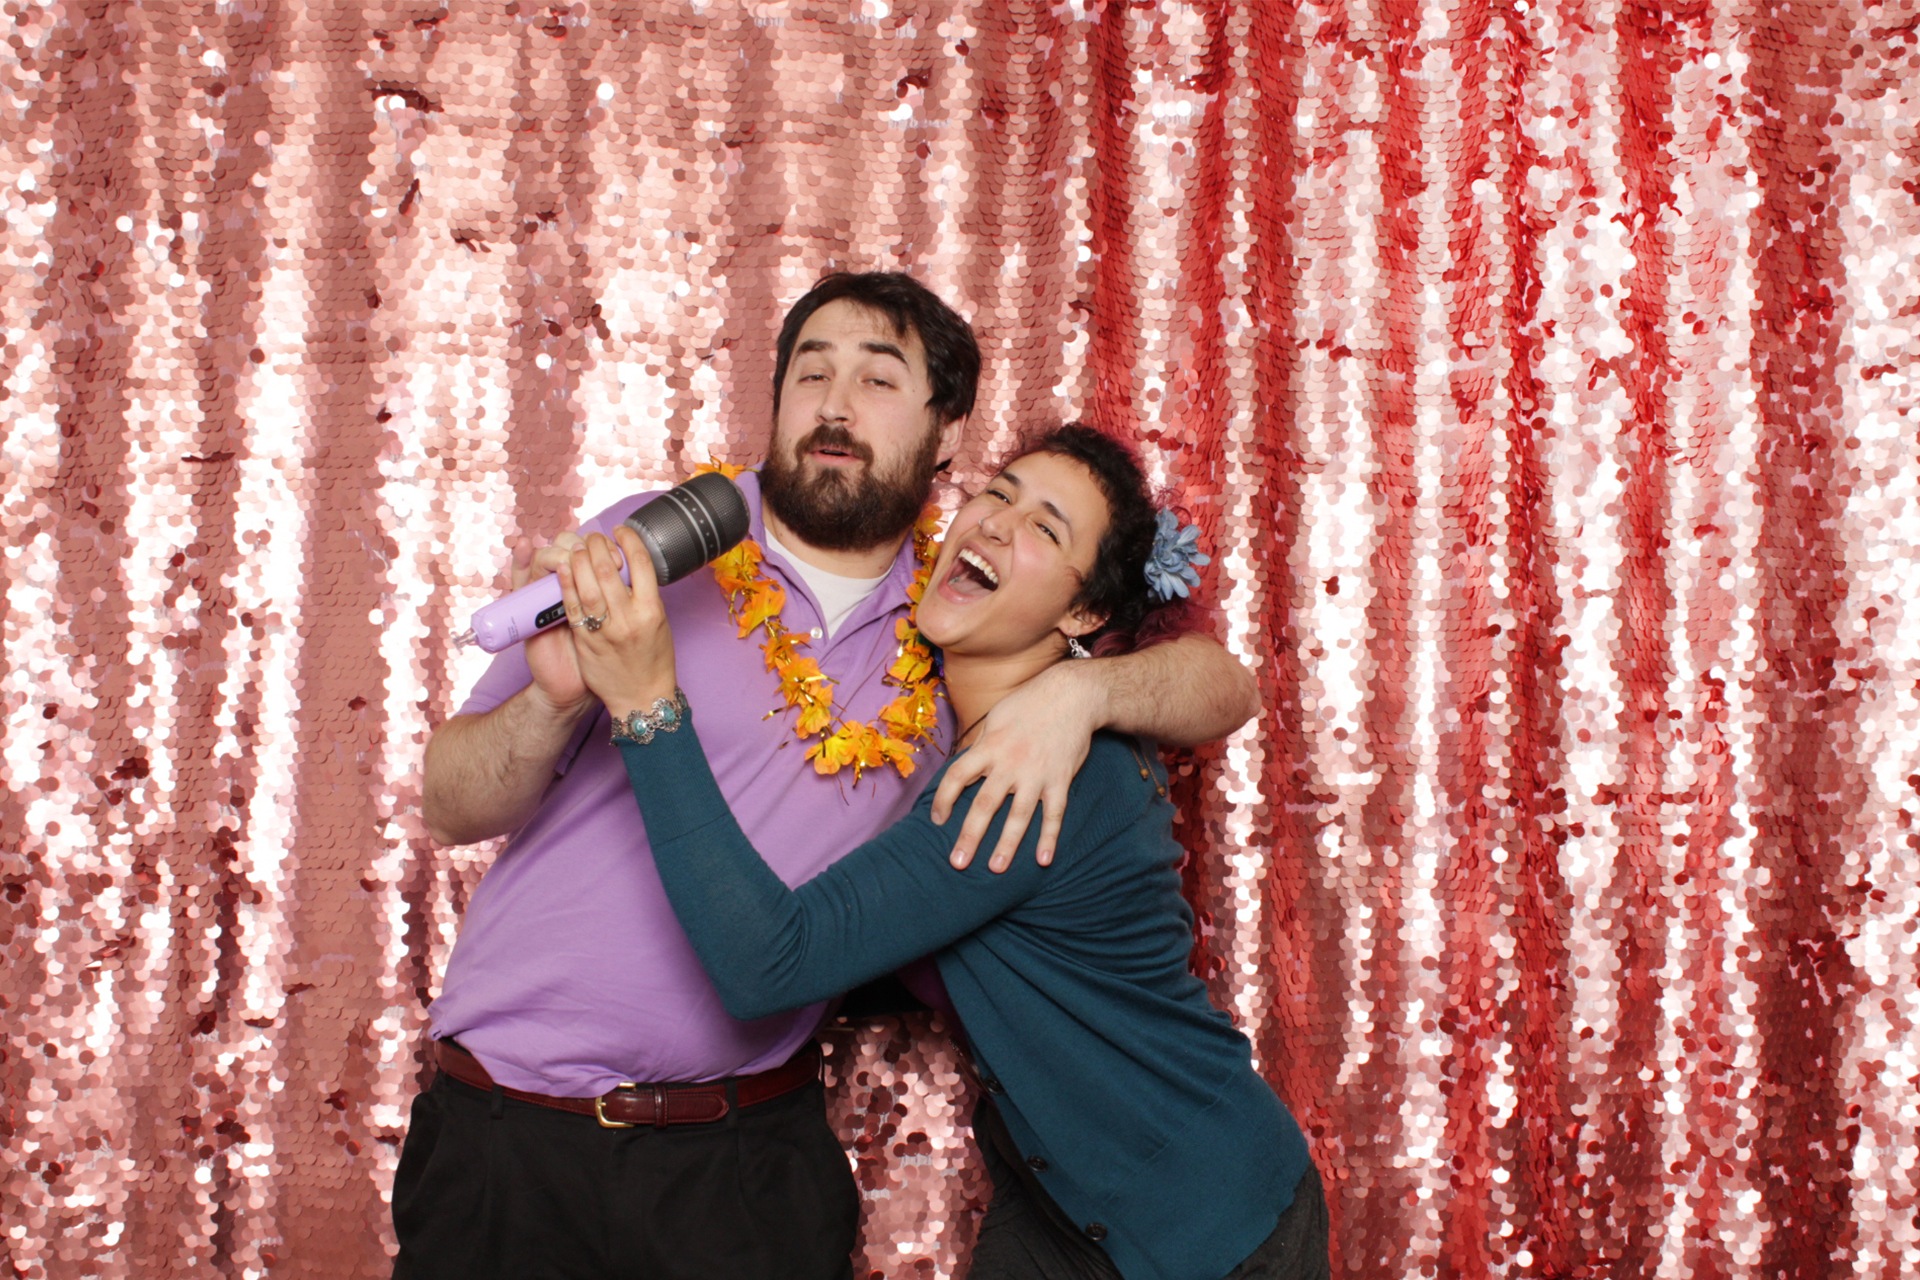 Philadelphia photobooth and video booth rental